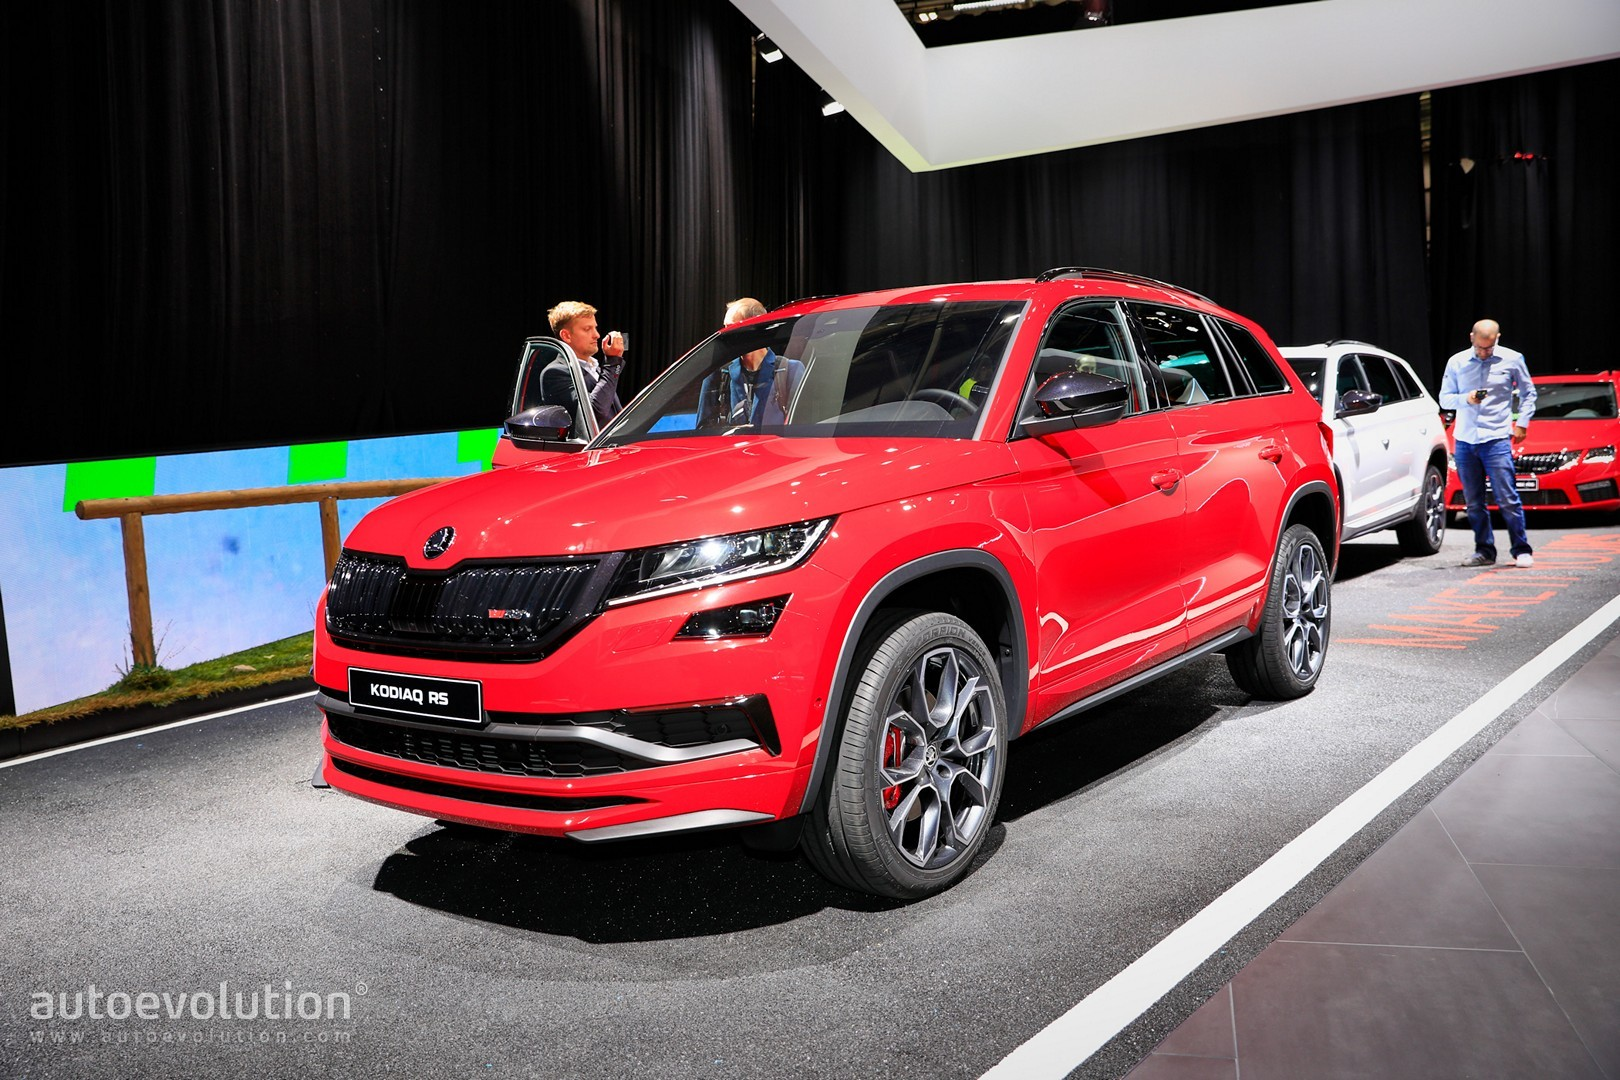 skoda kodiaq rs explores the limits of family cars in paris autoevolution. Black Bedroom Furniture Sets. Home Design Ideas